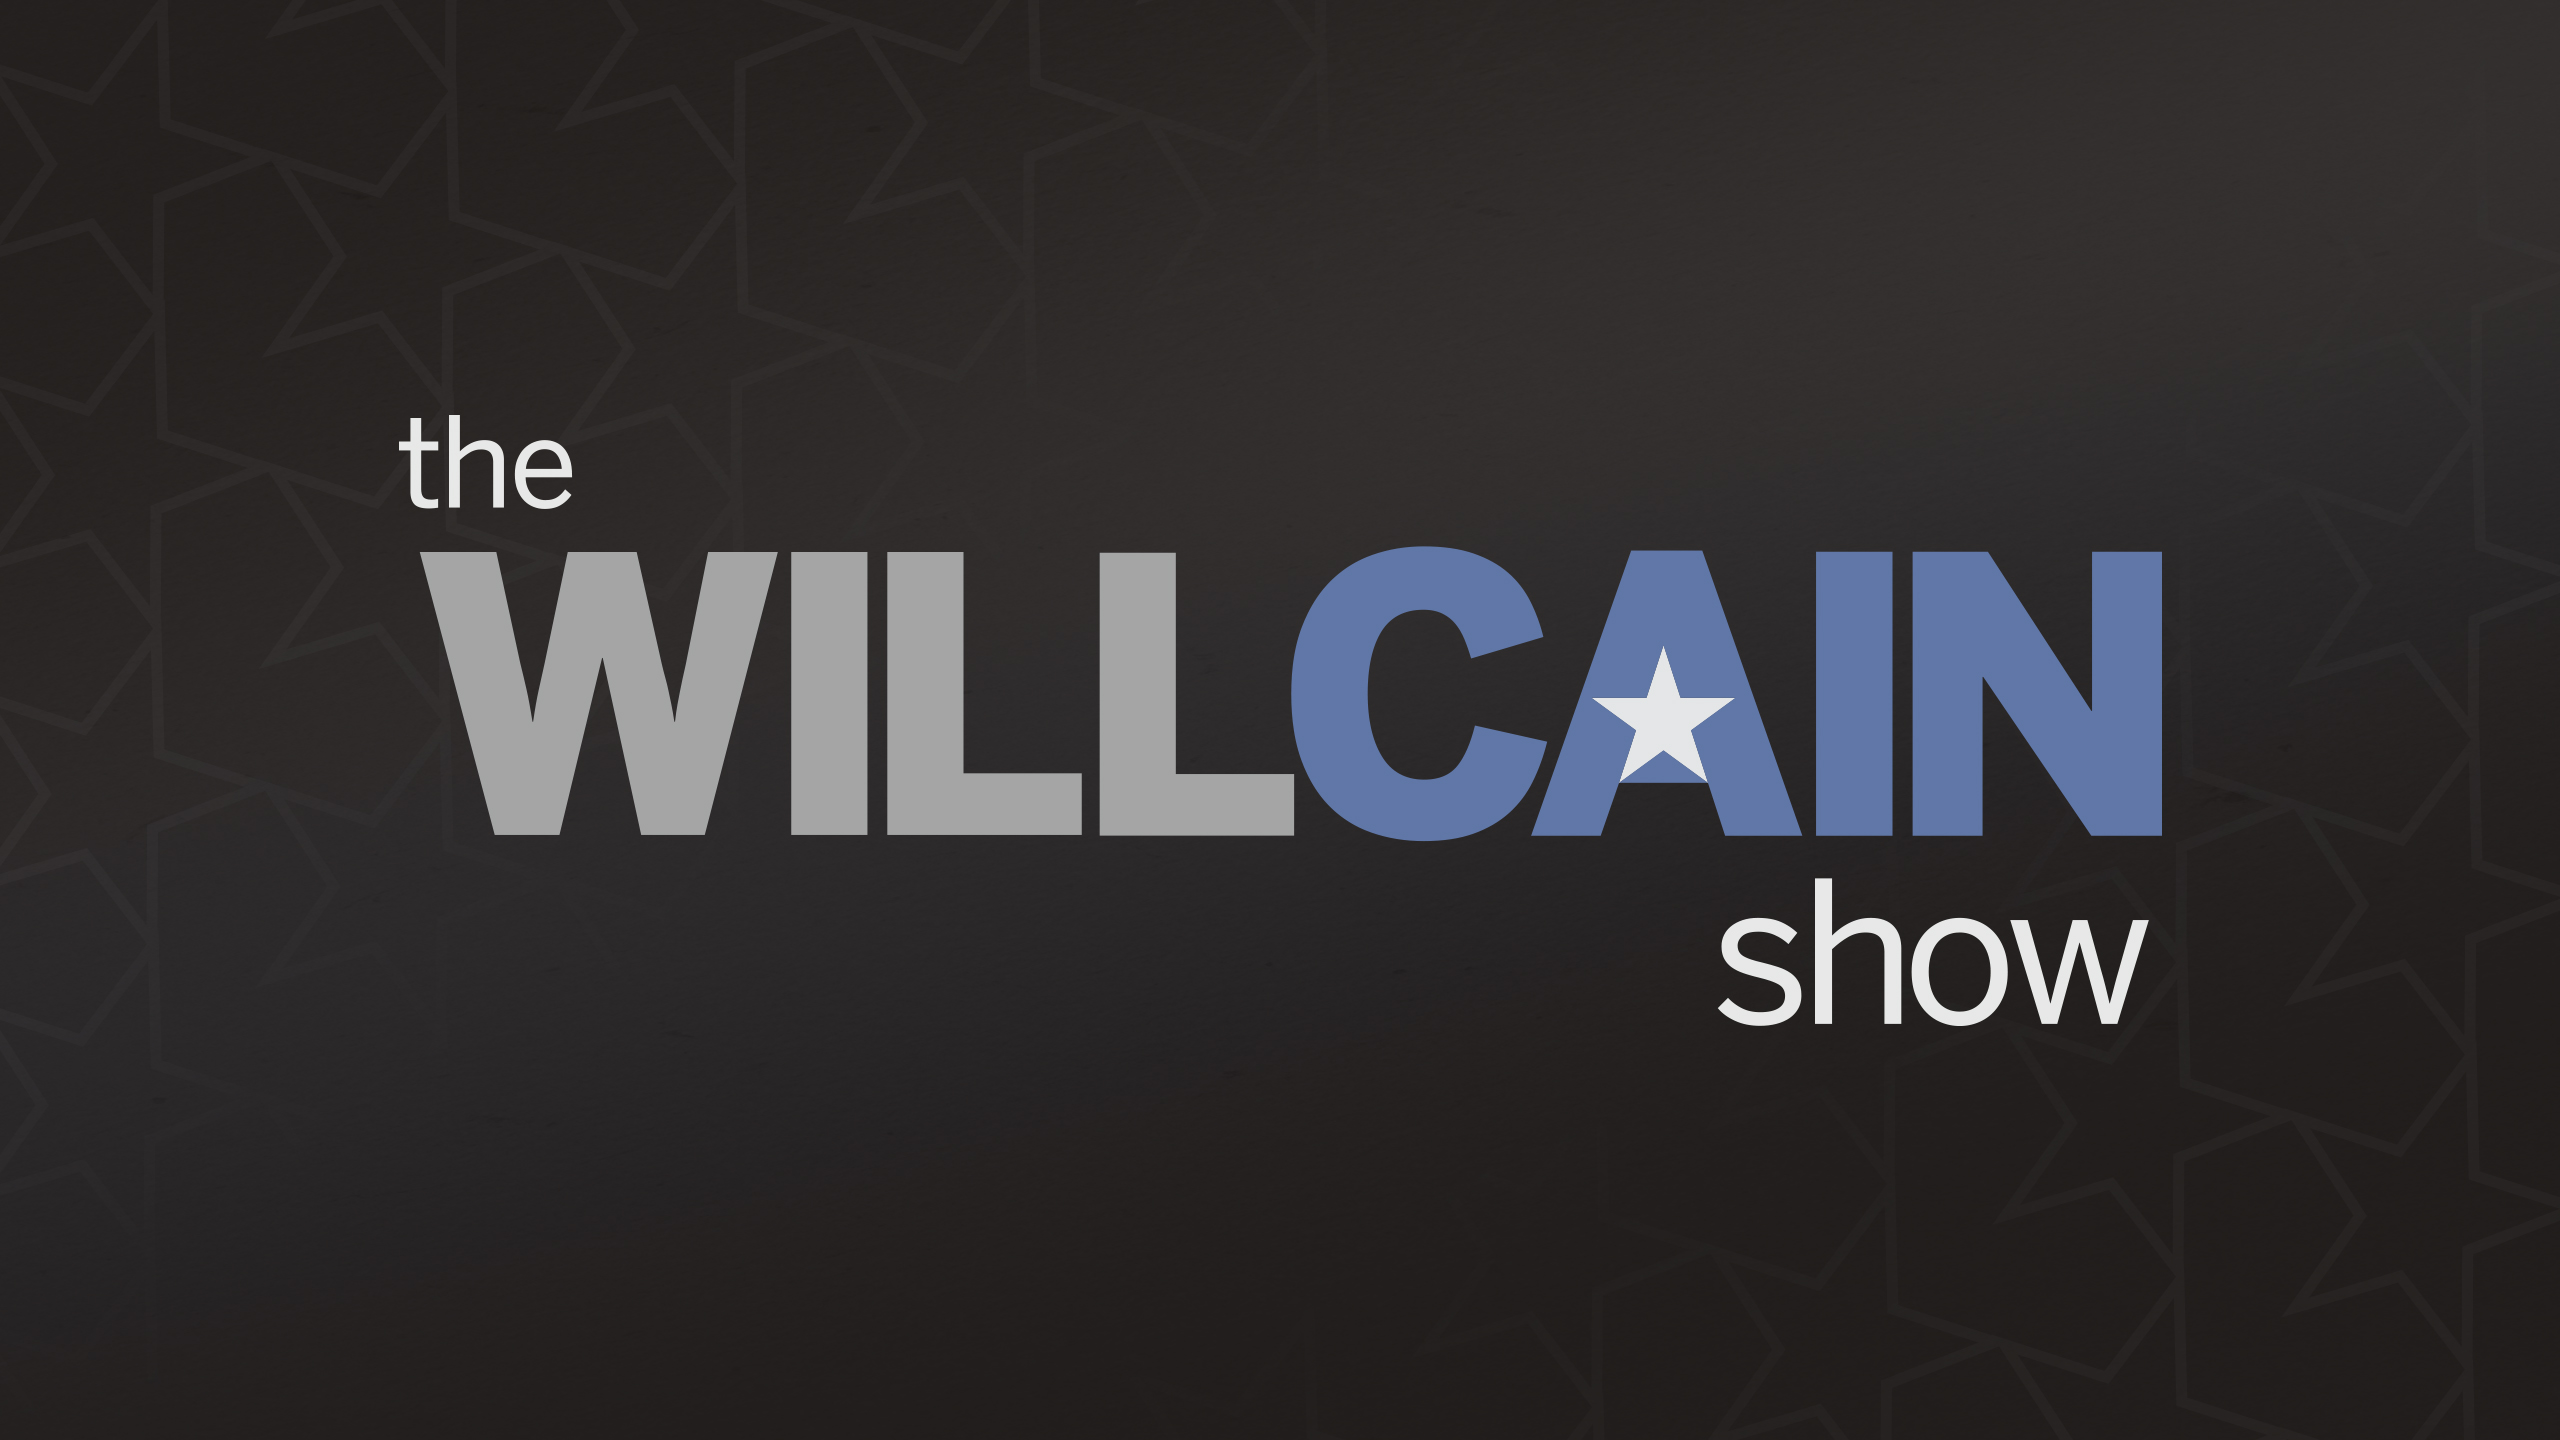 Wed, 9/19 - The Will Cain Show